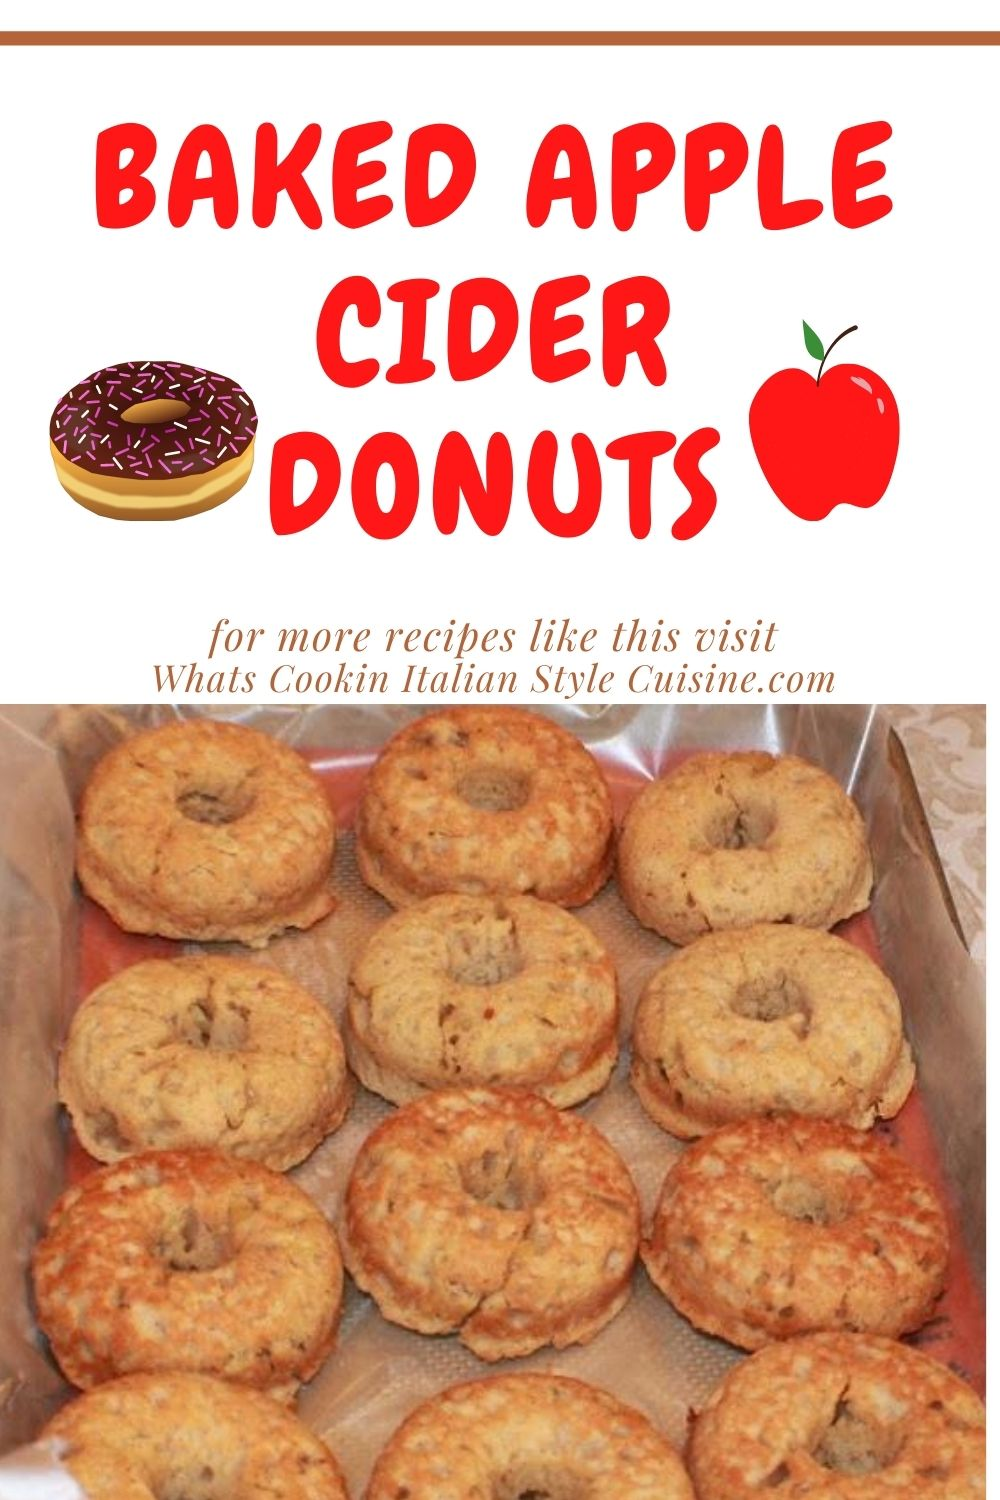 These are baked apple cider donuts plain unfrosted with apples in them and cinnamon pin for later